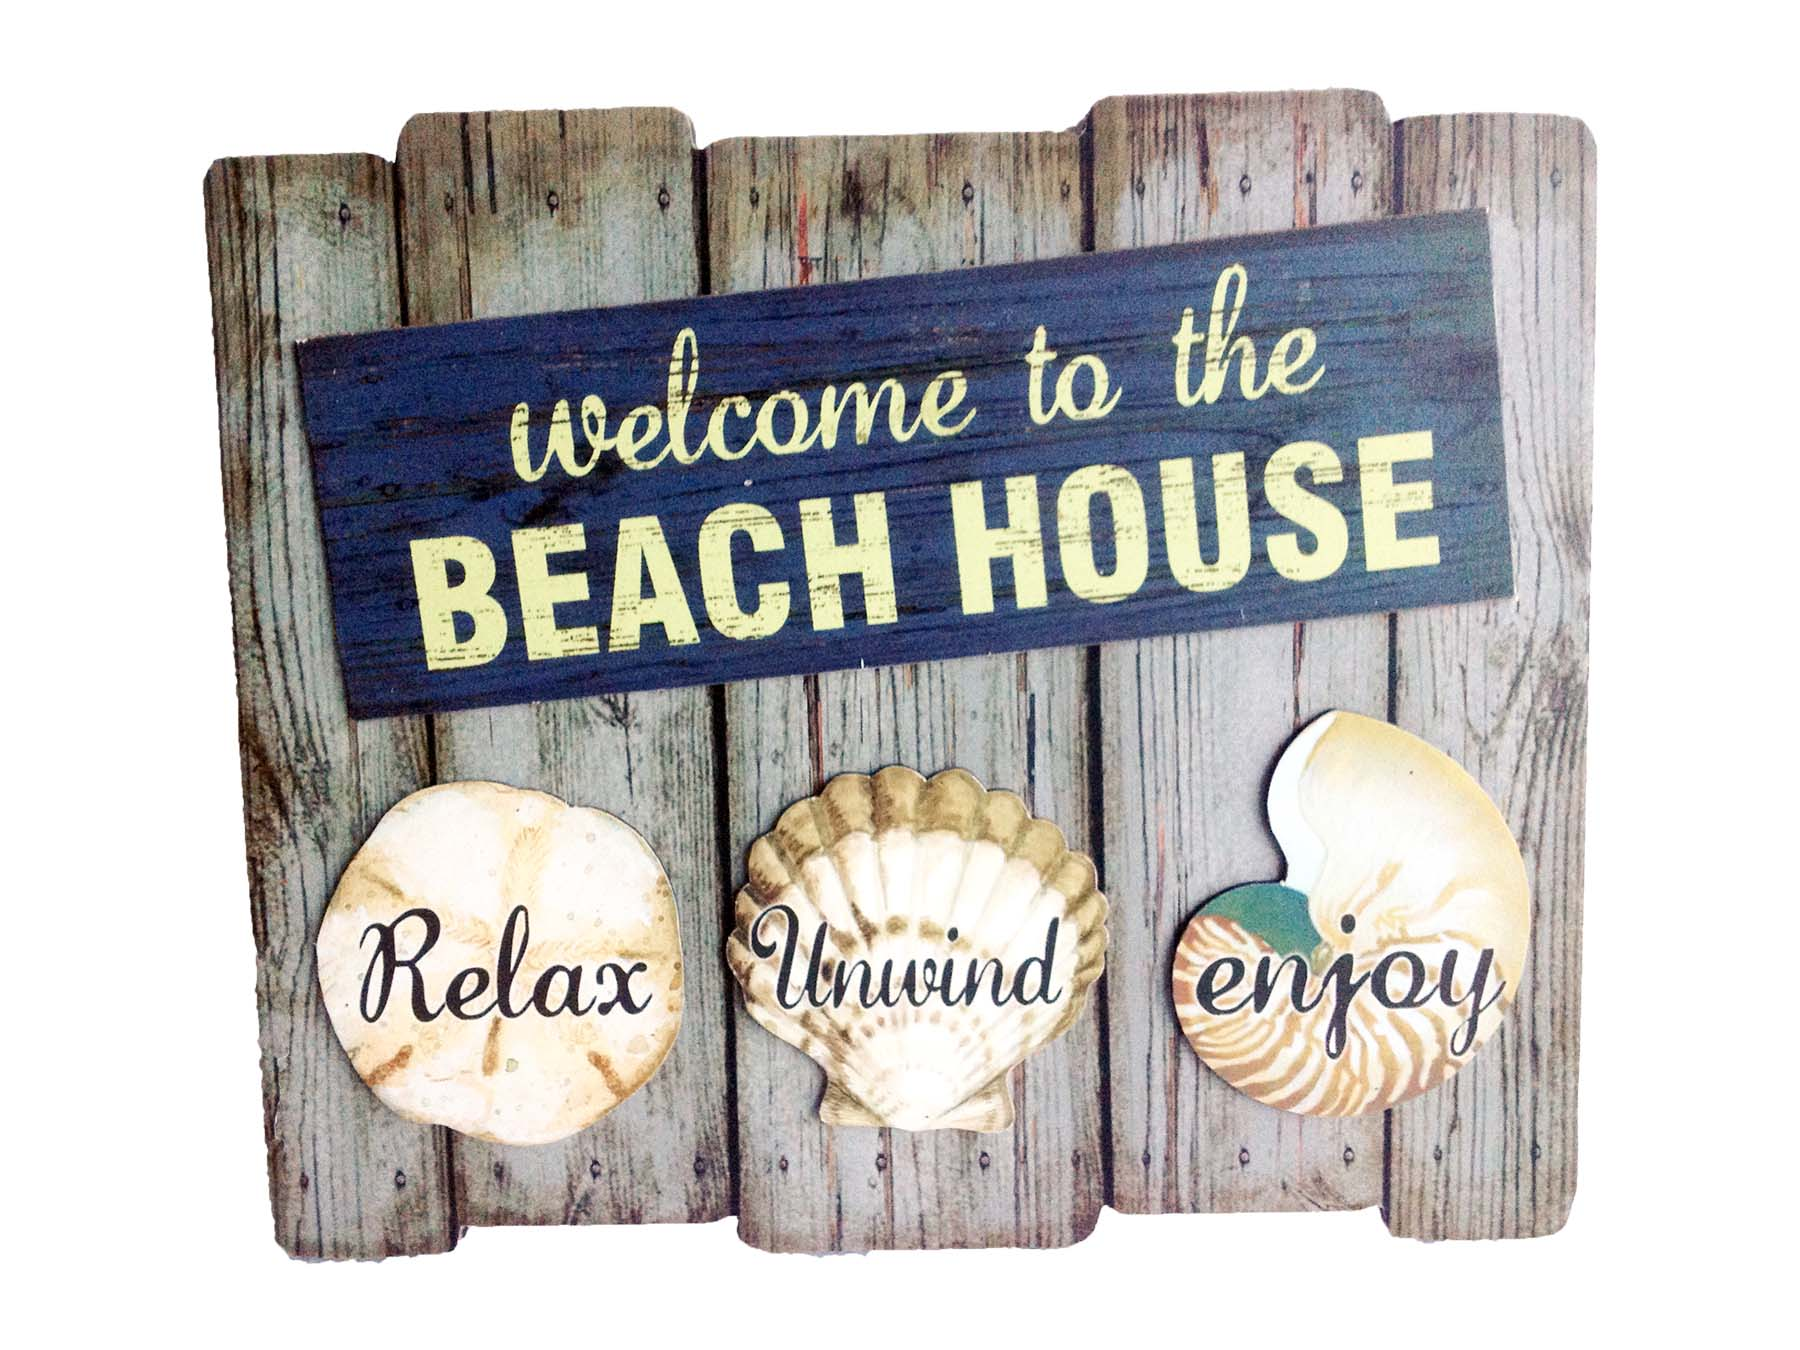 PLAC-WOOD/SHELLS BEACH HOUSE * UOM: pc * Minimum Order:10